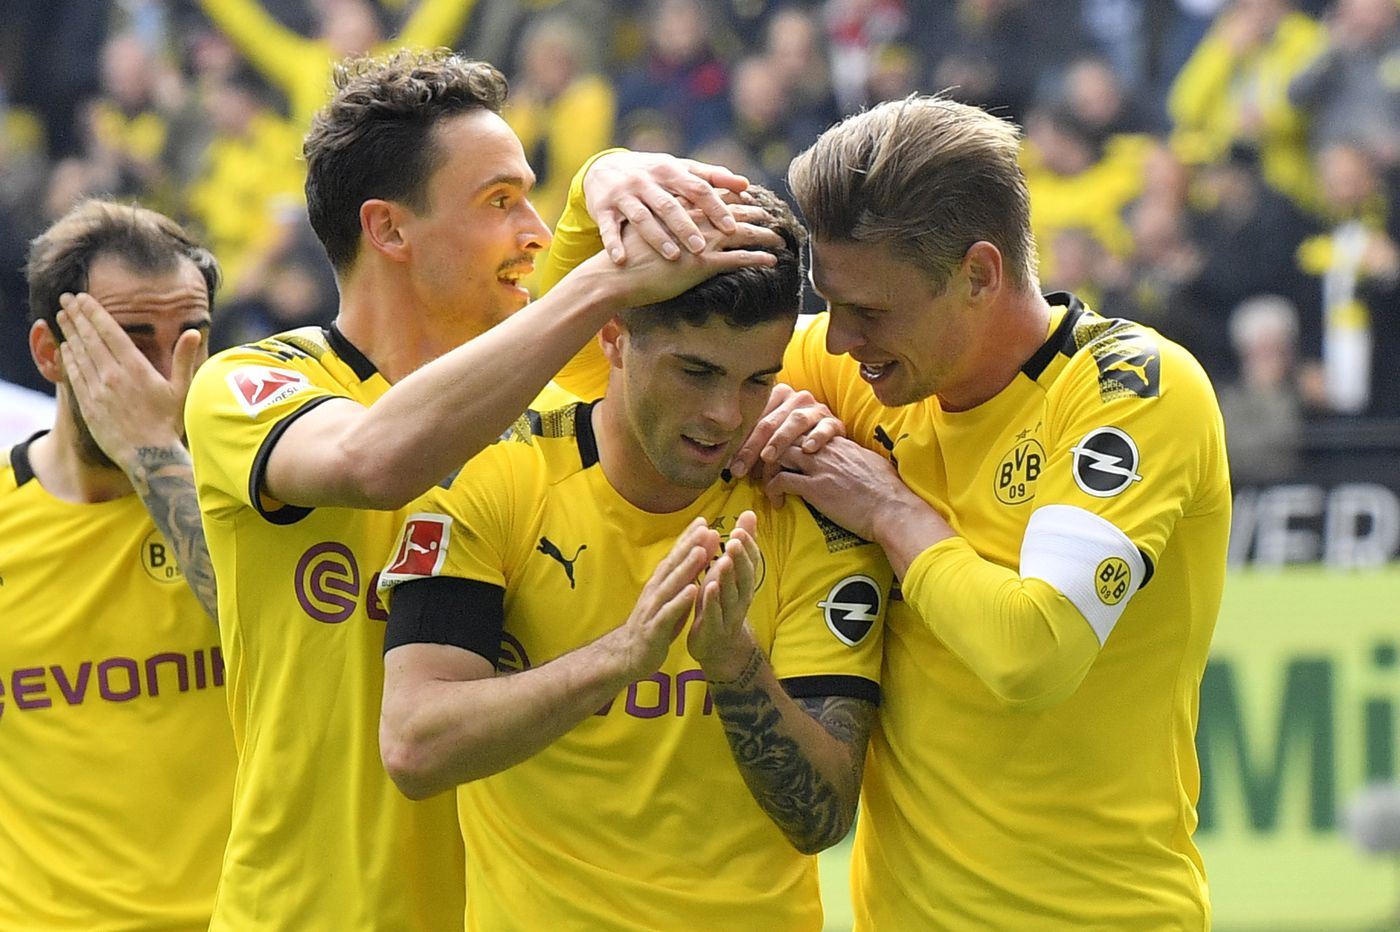 Christian Pulisic scores in tearful home farewell to Borussia Dortmund fans